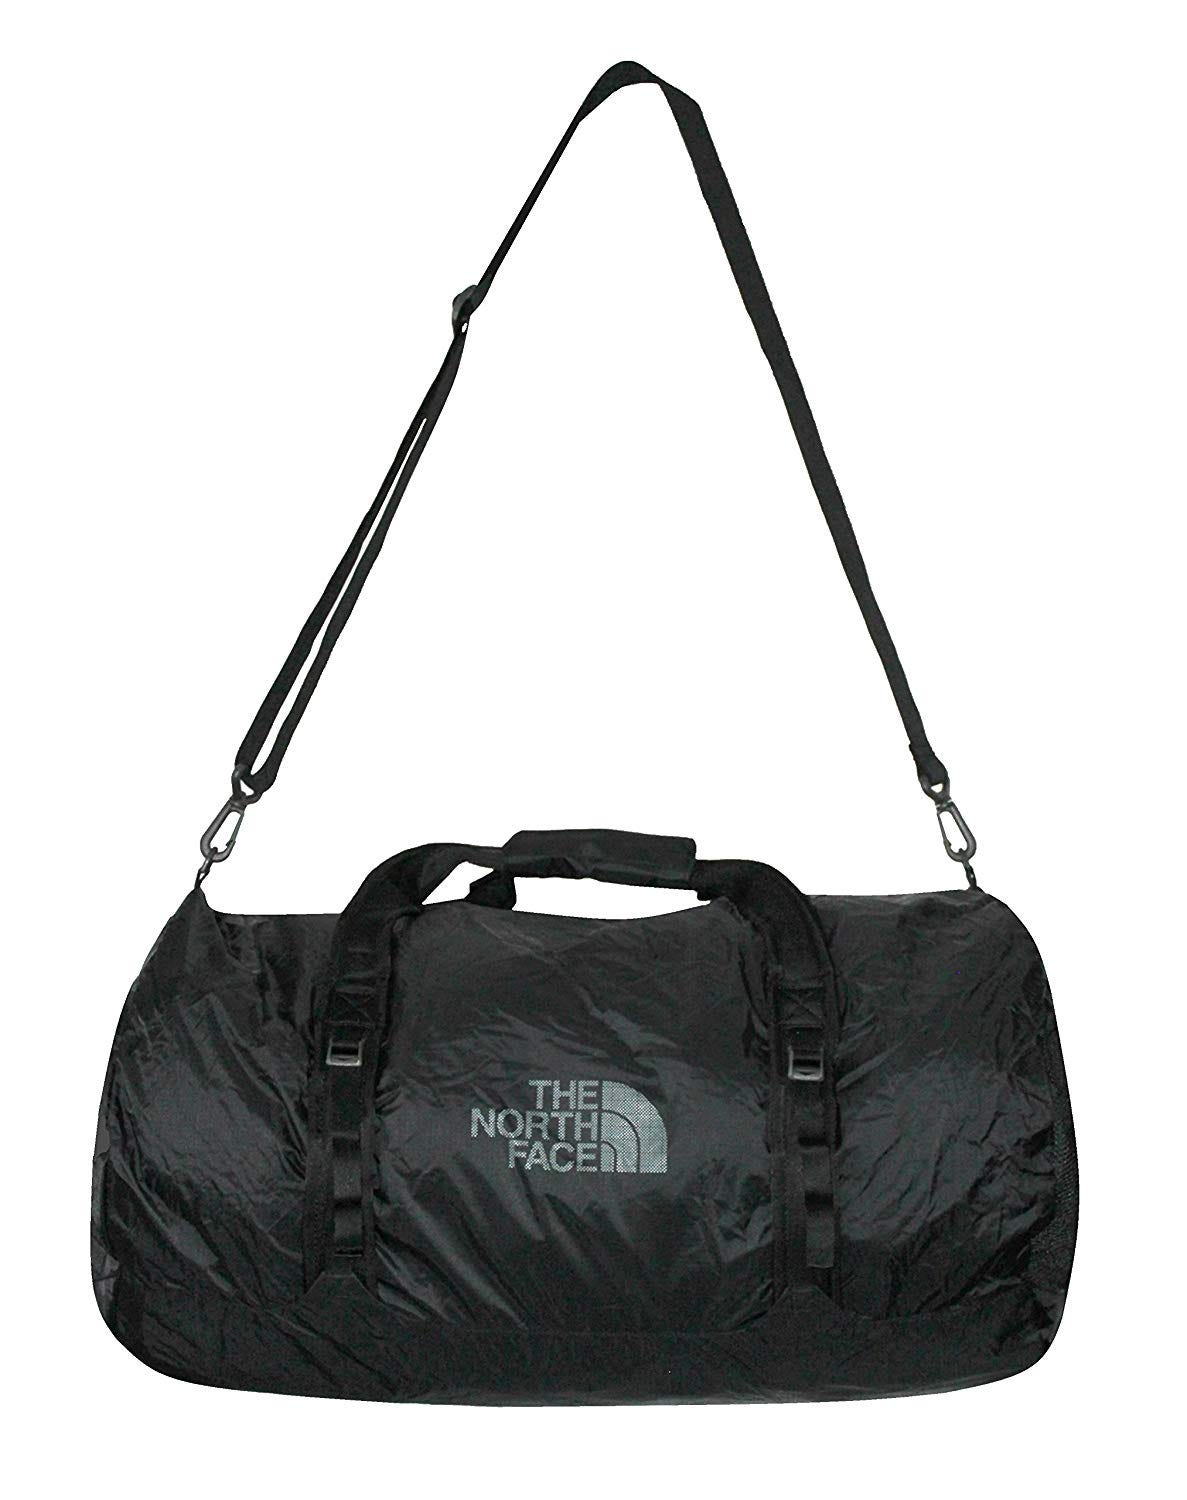 a69700eb171 Best Gym Bags For Women - Fitness Totes